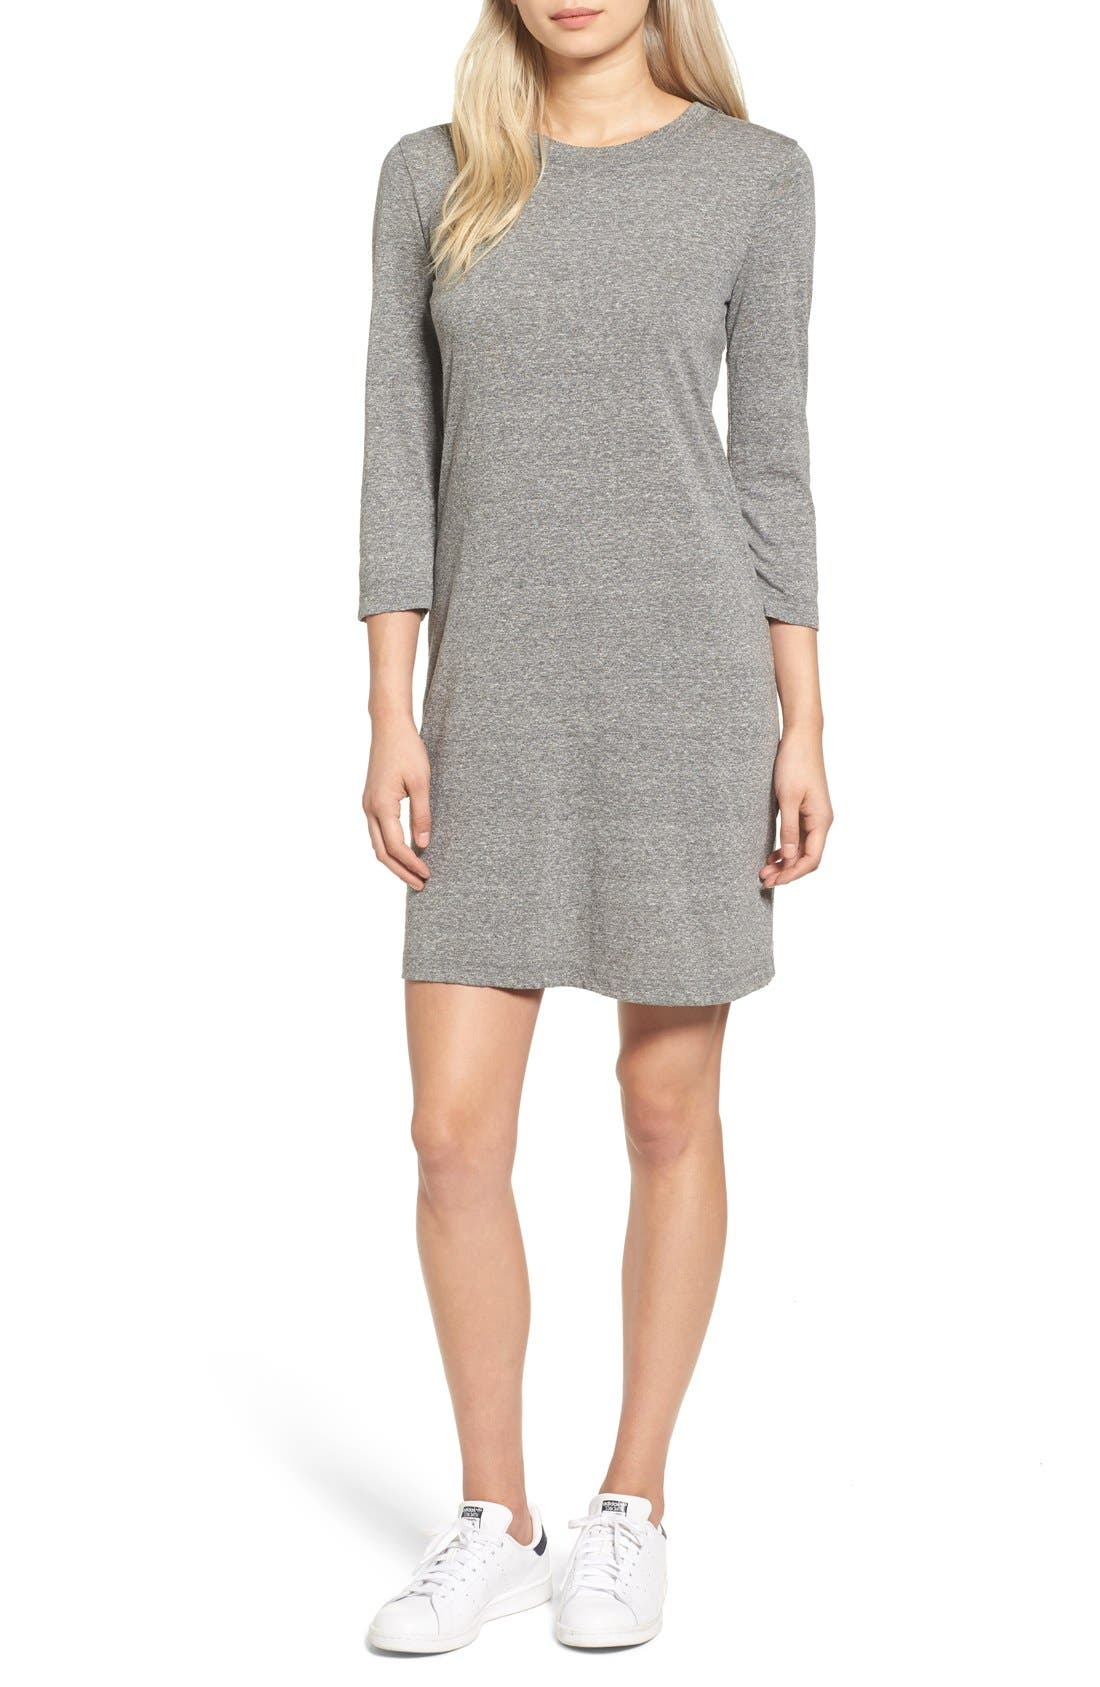 T-Shirt Dress,                             Main thumbnail 1, color,                             Heather Grey